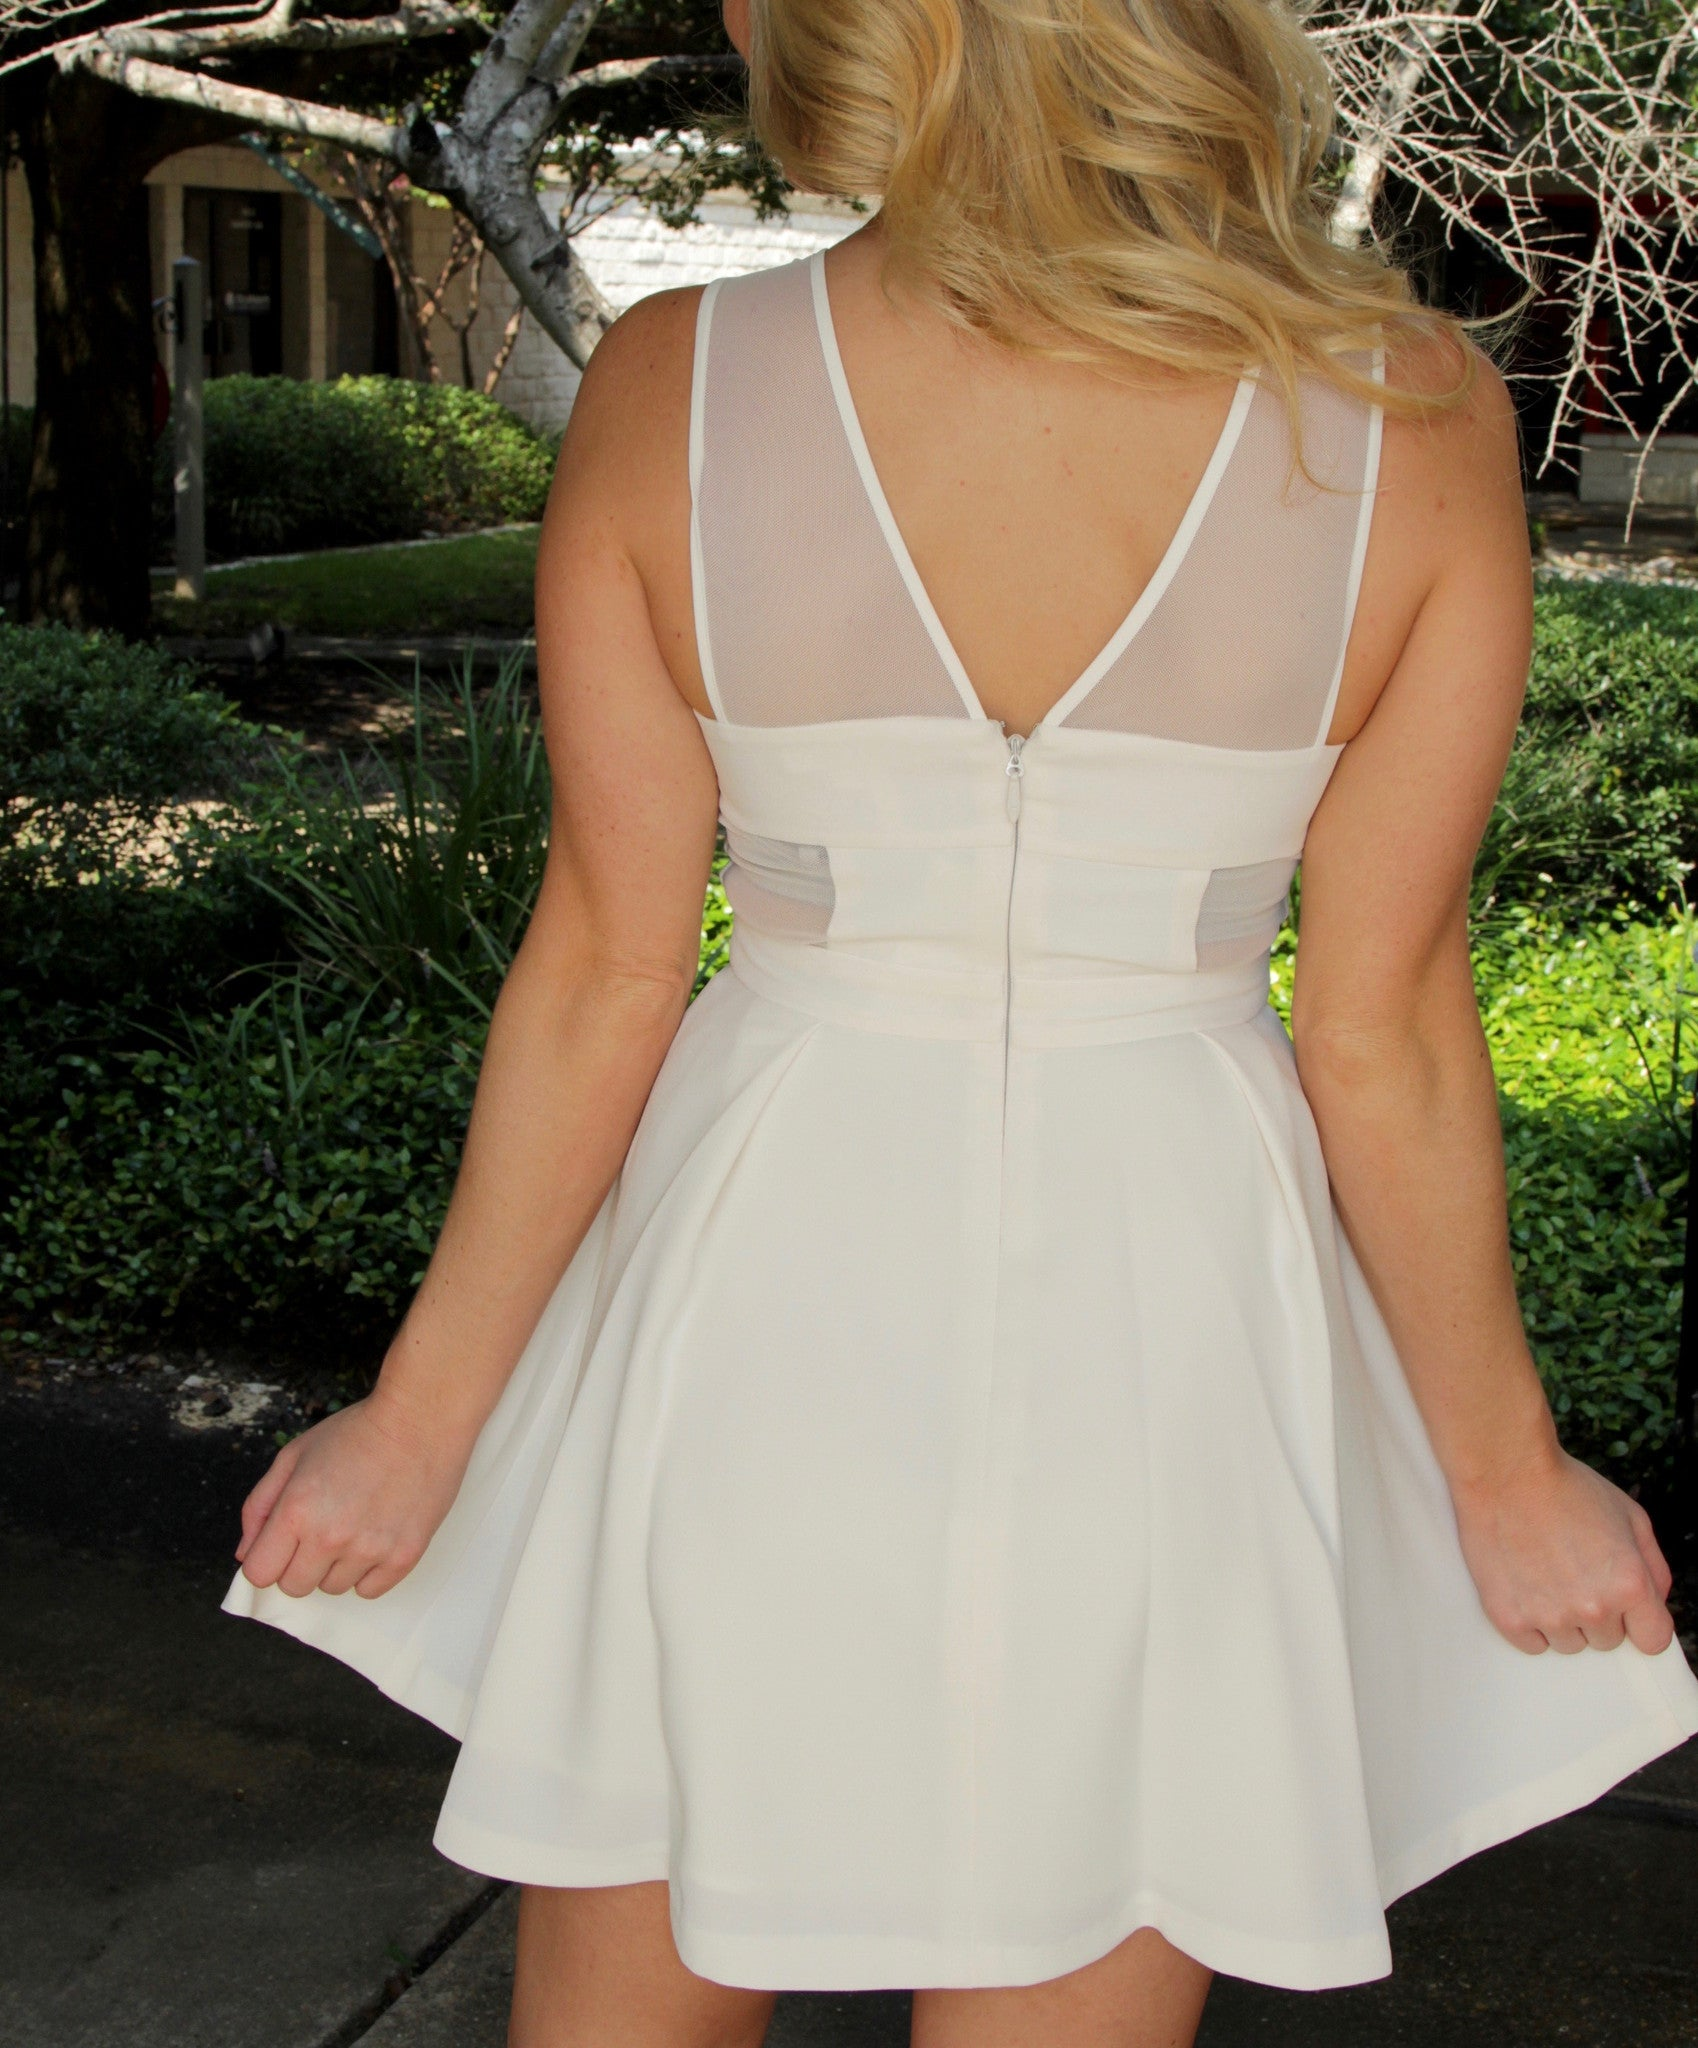 The Bridal Shower Dress